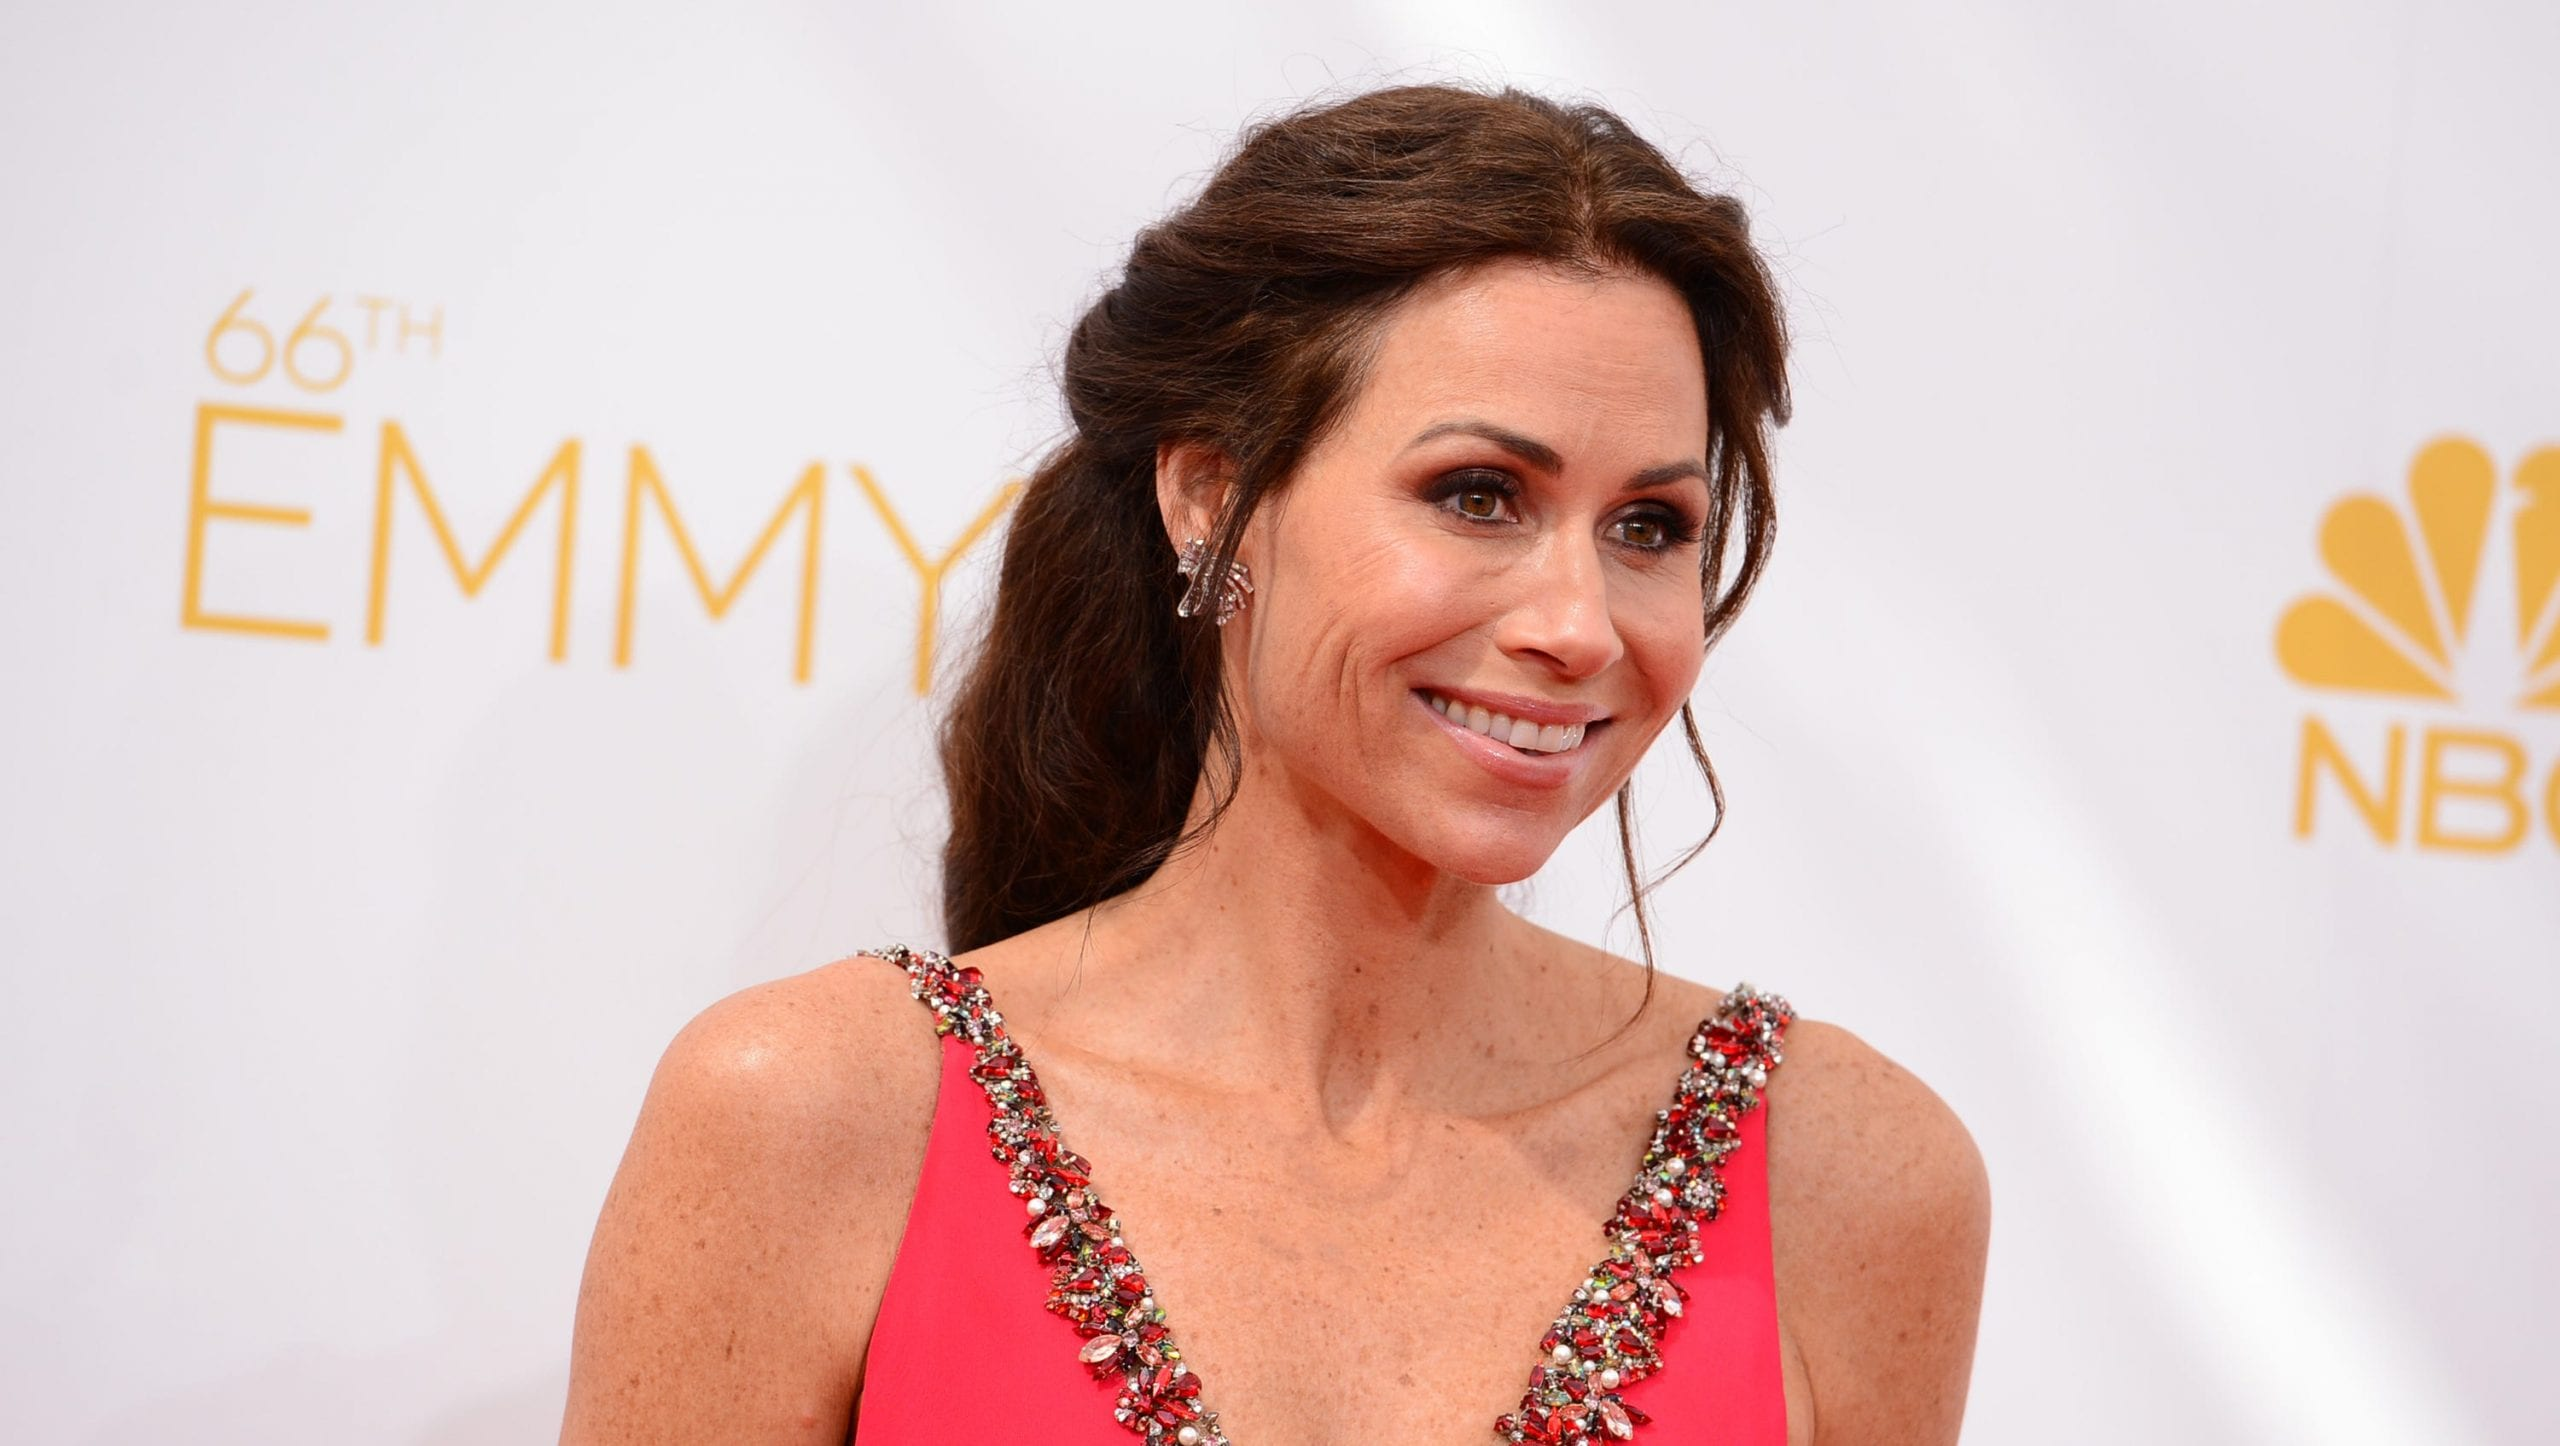 Minnie Driver who is she dating?